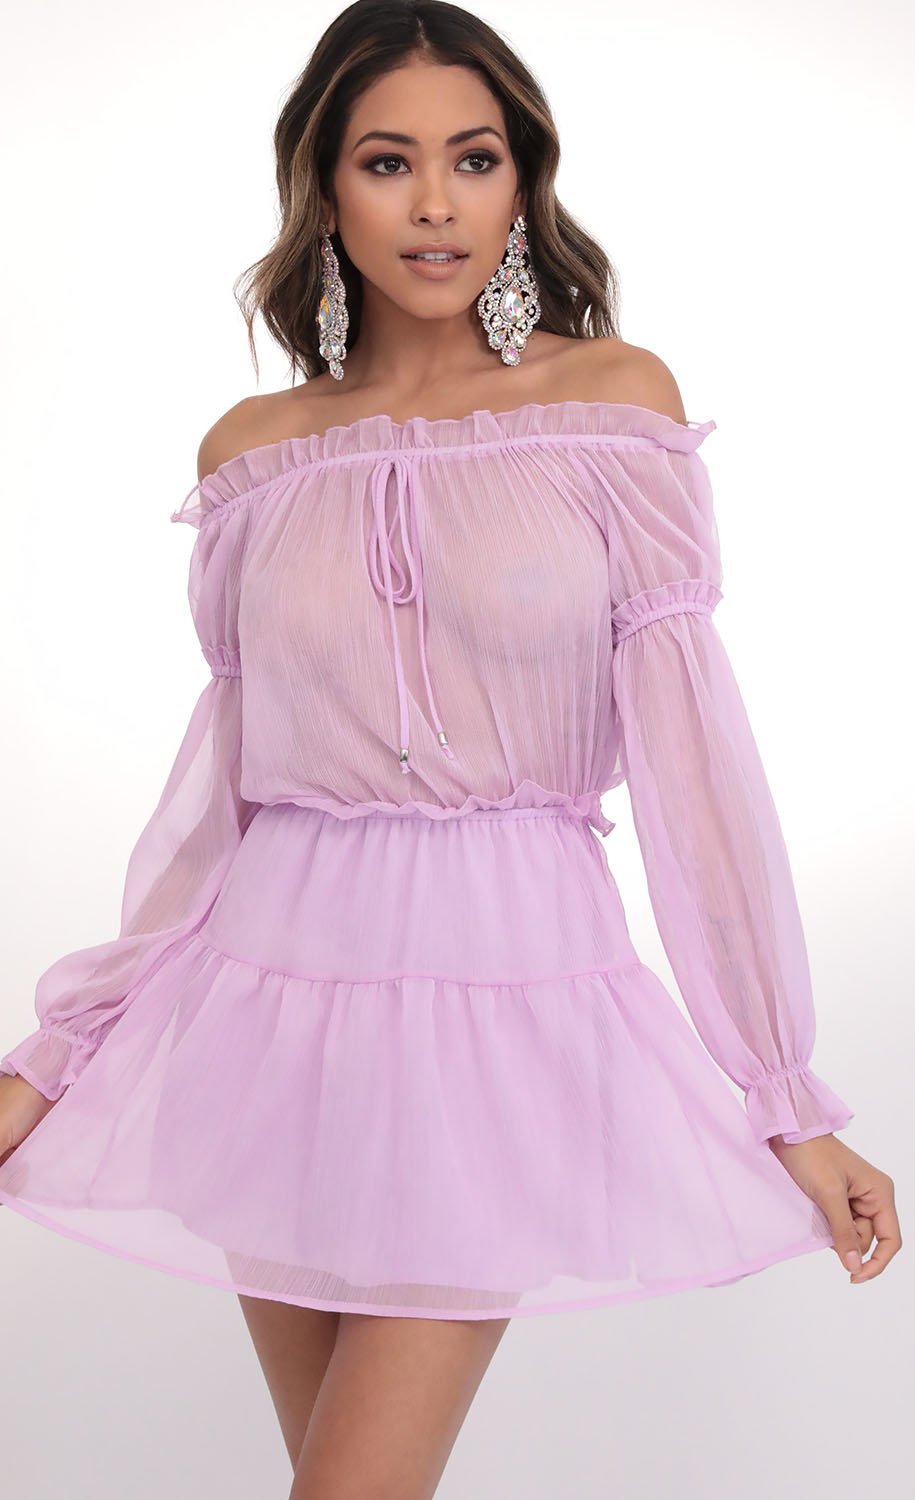 Wild Thoughts Off The Shoulder Dress in Lilac